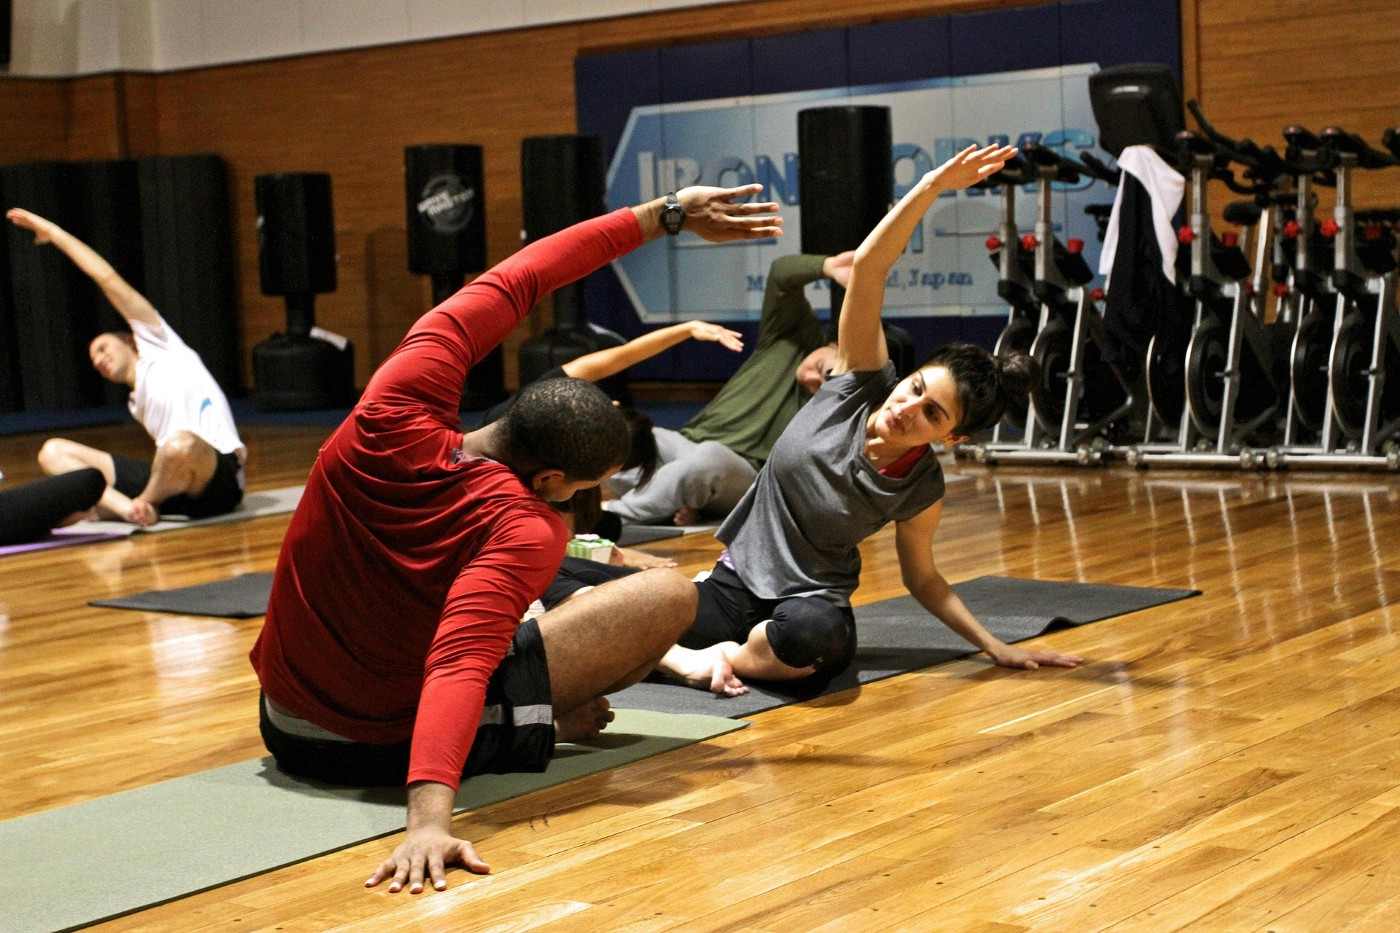 Active men and women engage in workouts to keep fit and healthy